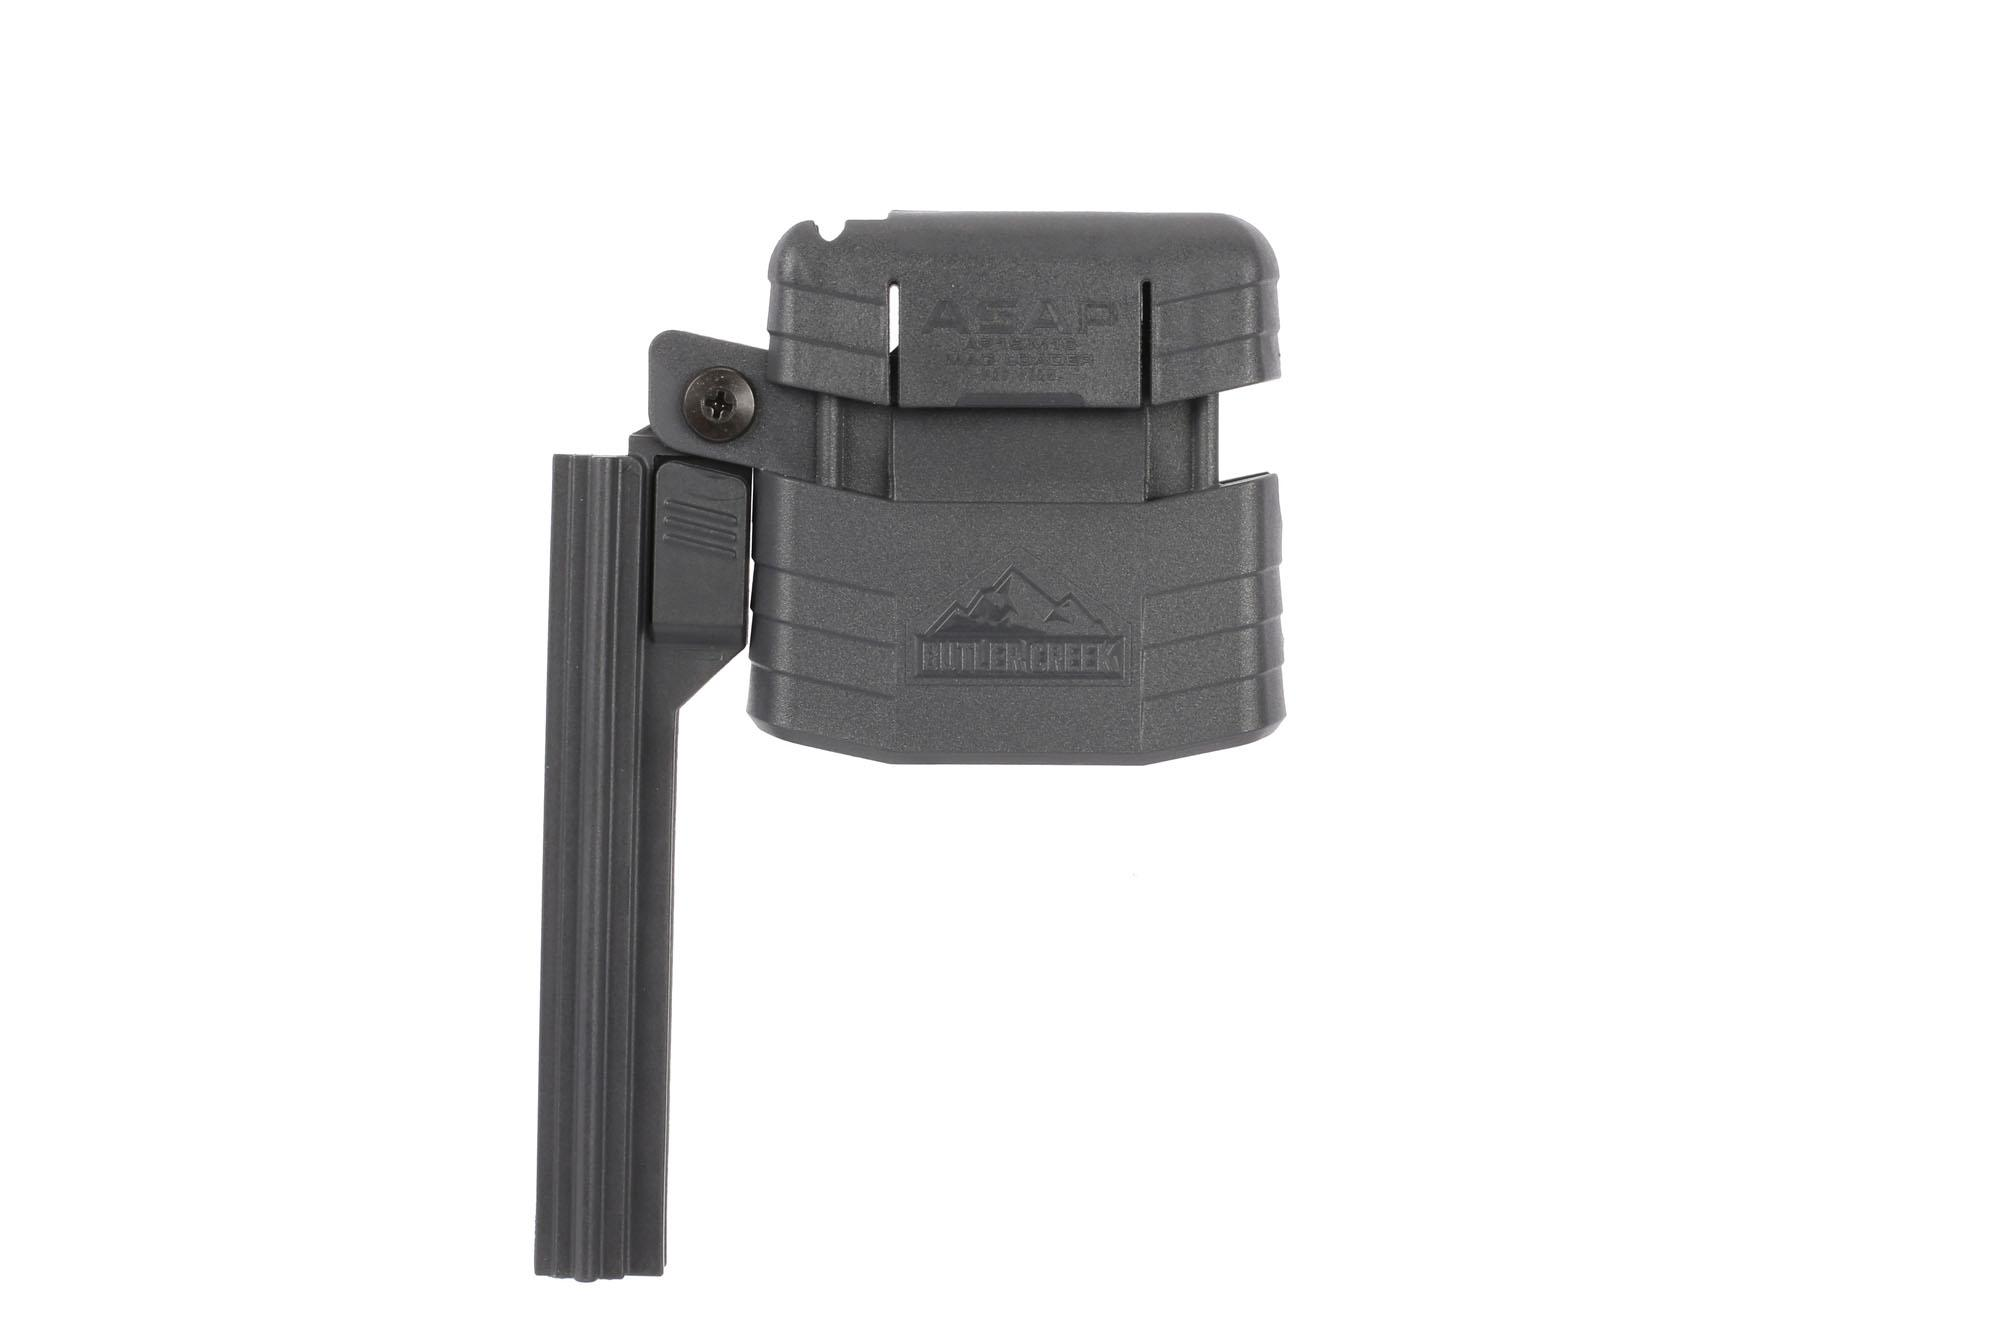 Butler Creek ASAP Universal AR-15/M16 Magazine Loader